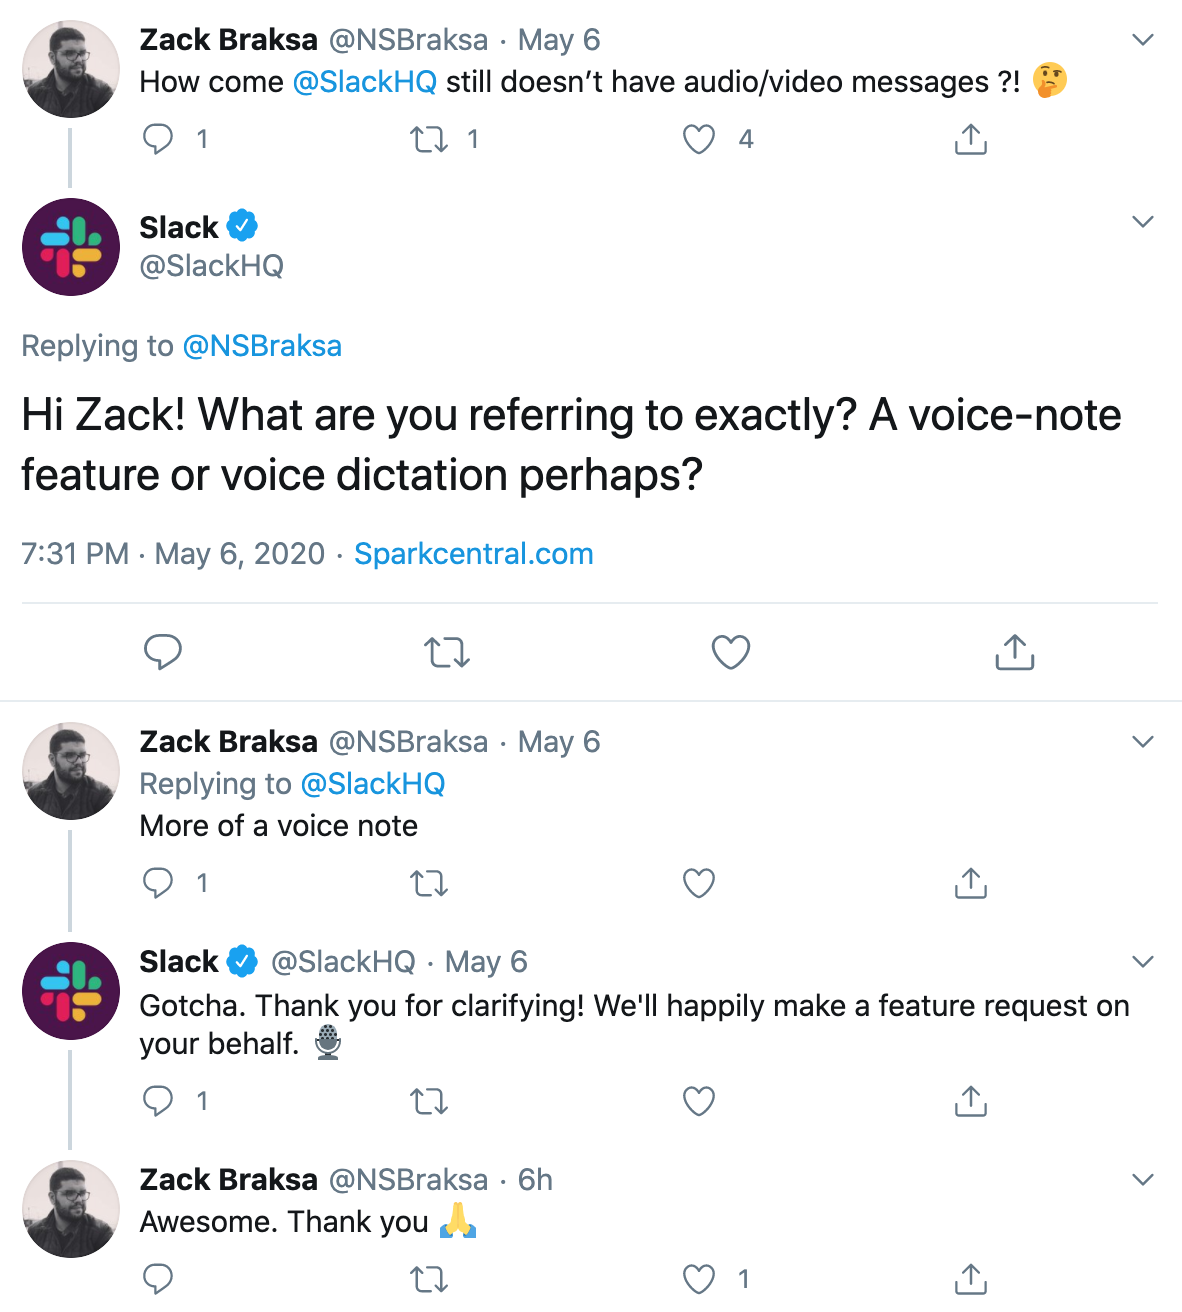 Tweet: How come @SlackHQ still doesn't have audio/video messages?!